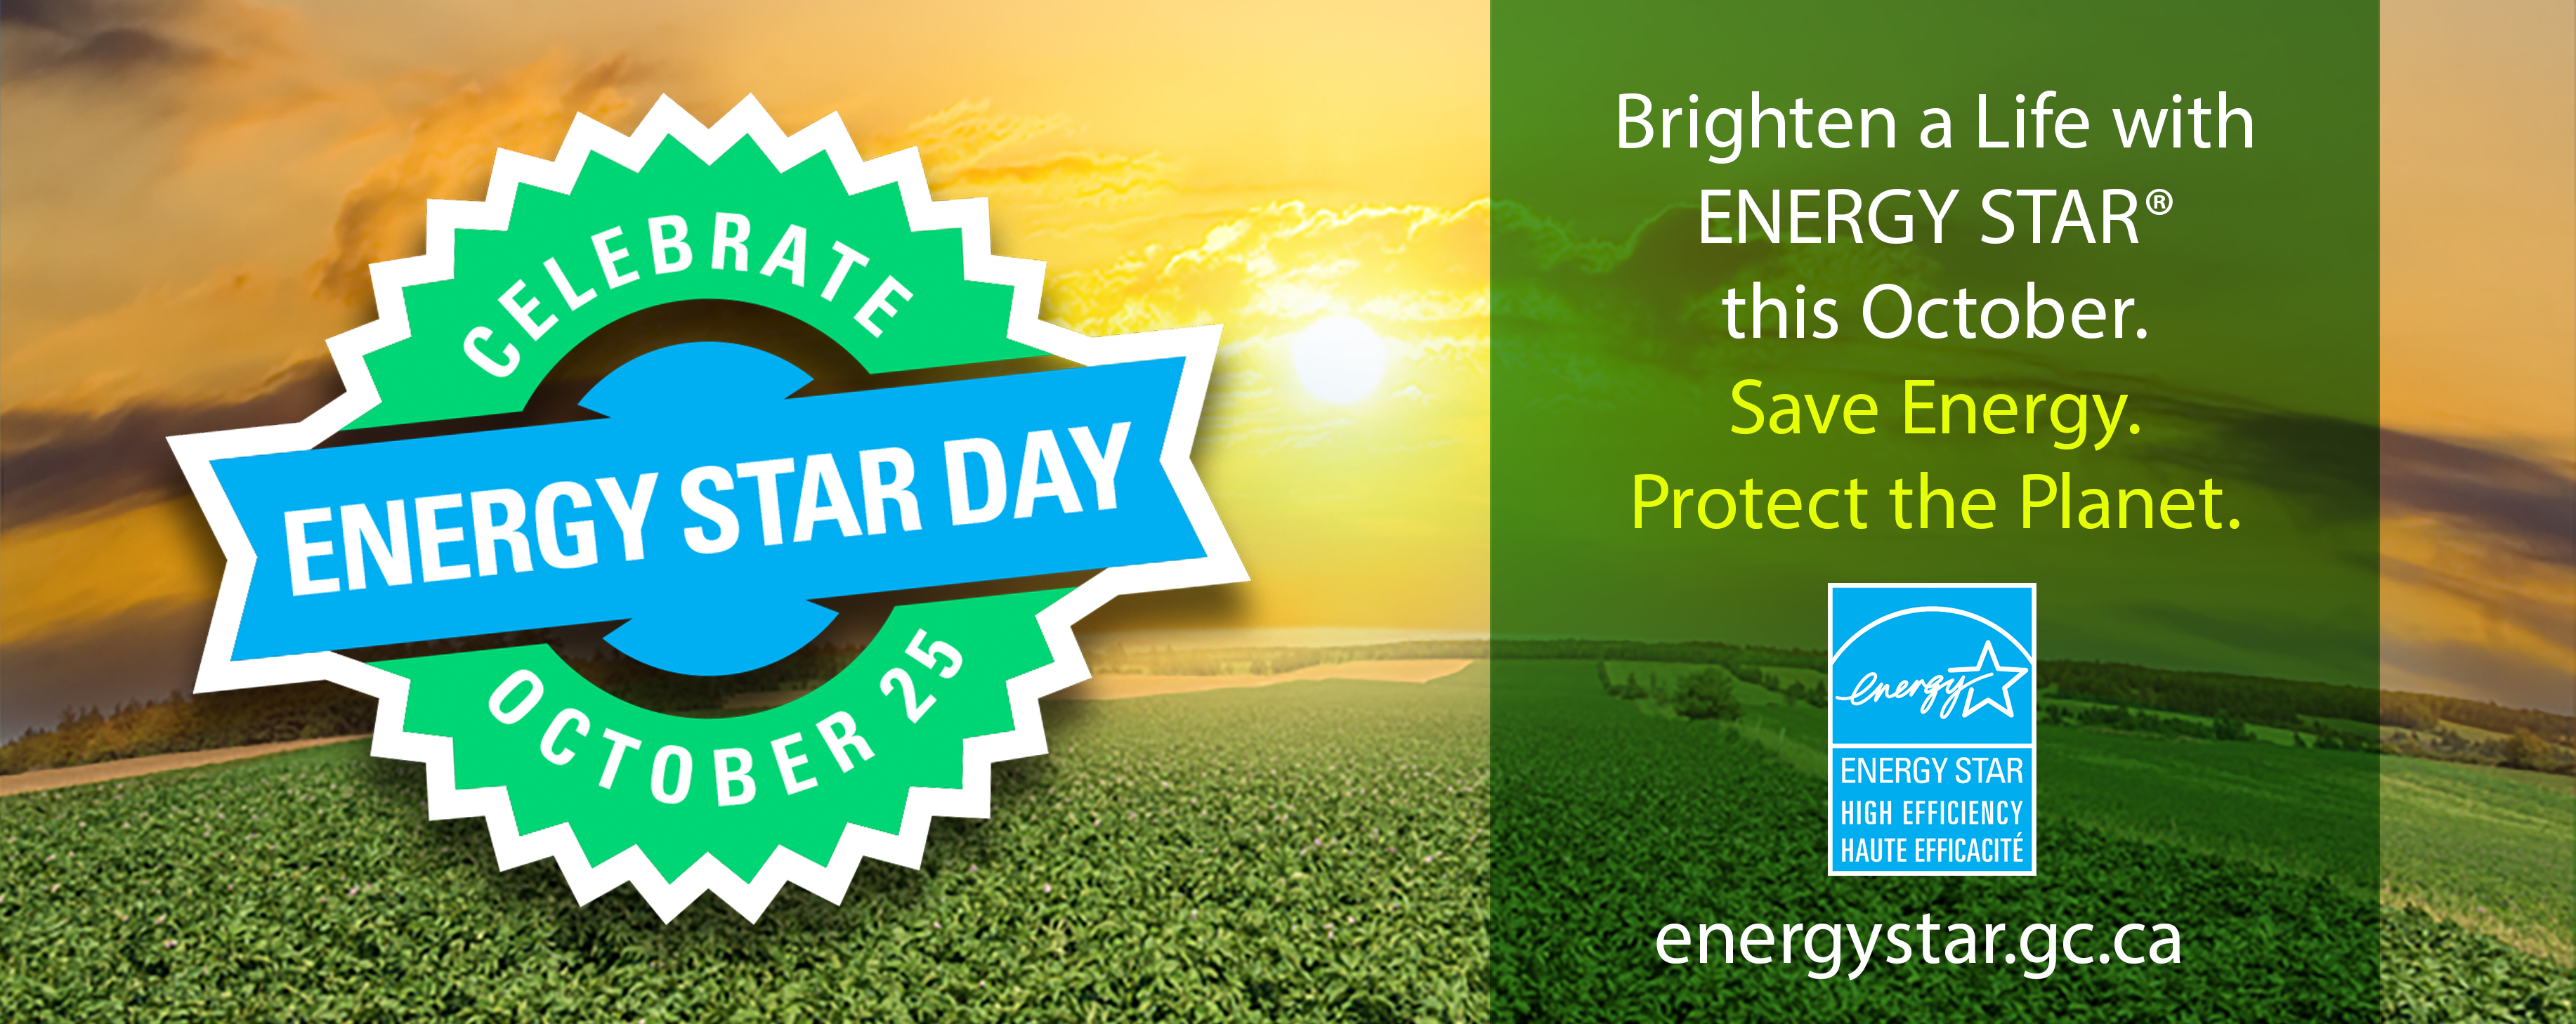 "October 25. Brighten a Life with ENERGY STAR® this October. Save Energy. Protect the Planet"". Includes ENERGY STAR High Efficiency/Haute Efficacité symbol and web url energystar.gc.ca"